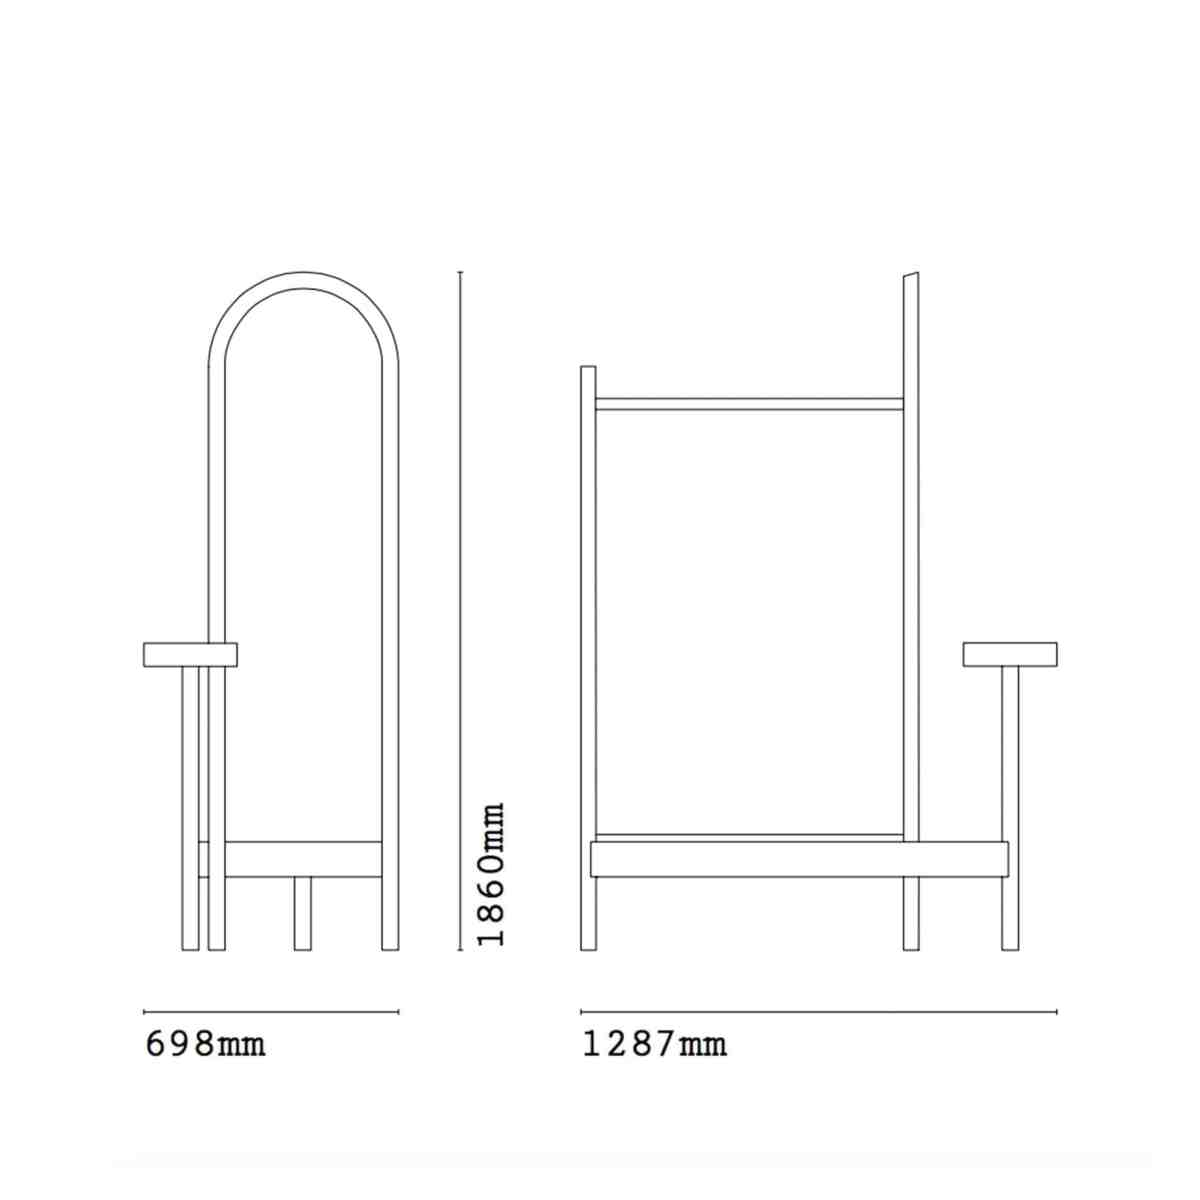 series-two-valet-stand-diagram-001